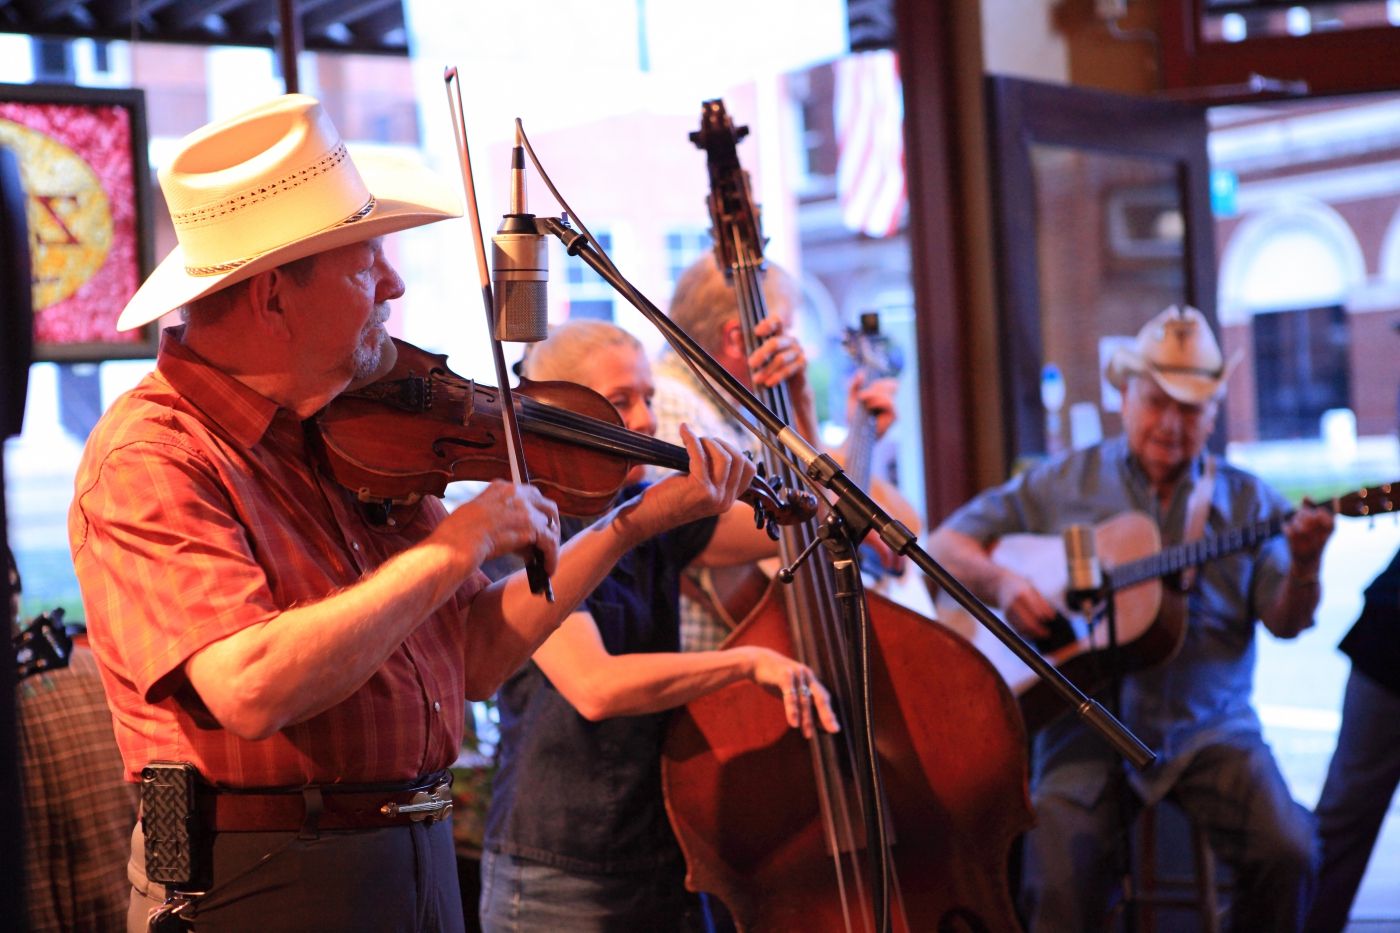 Bluegrass history is rich in Asheville and across North Carolina.